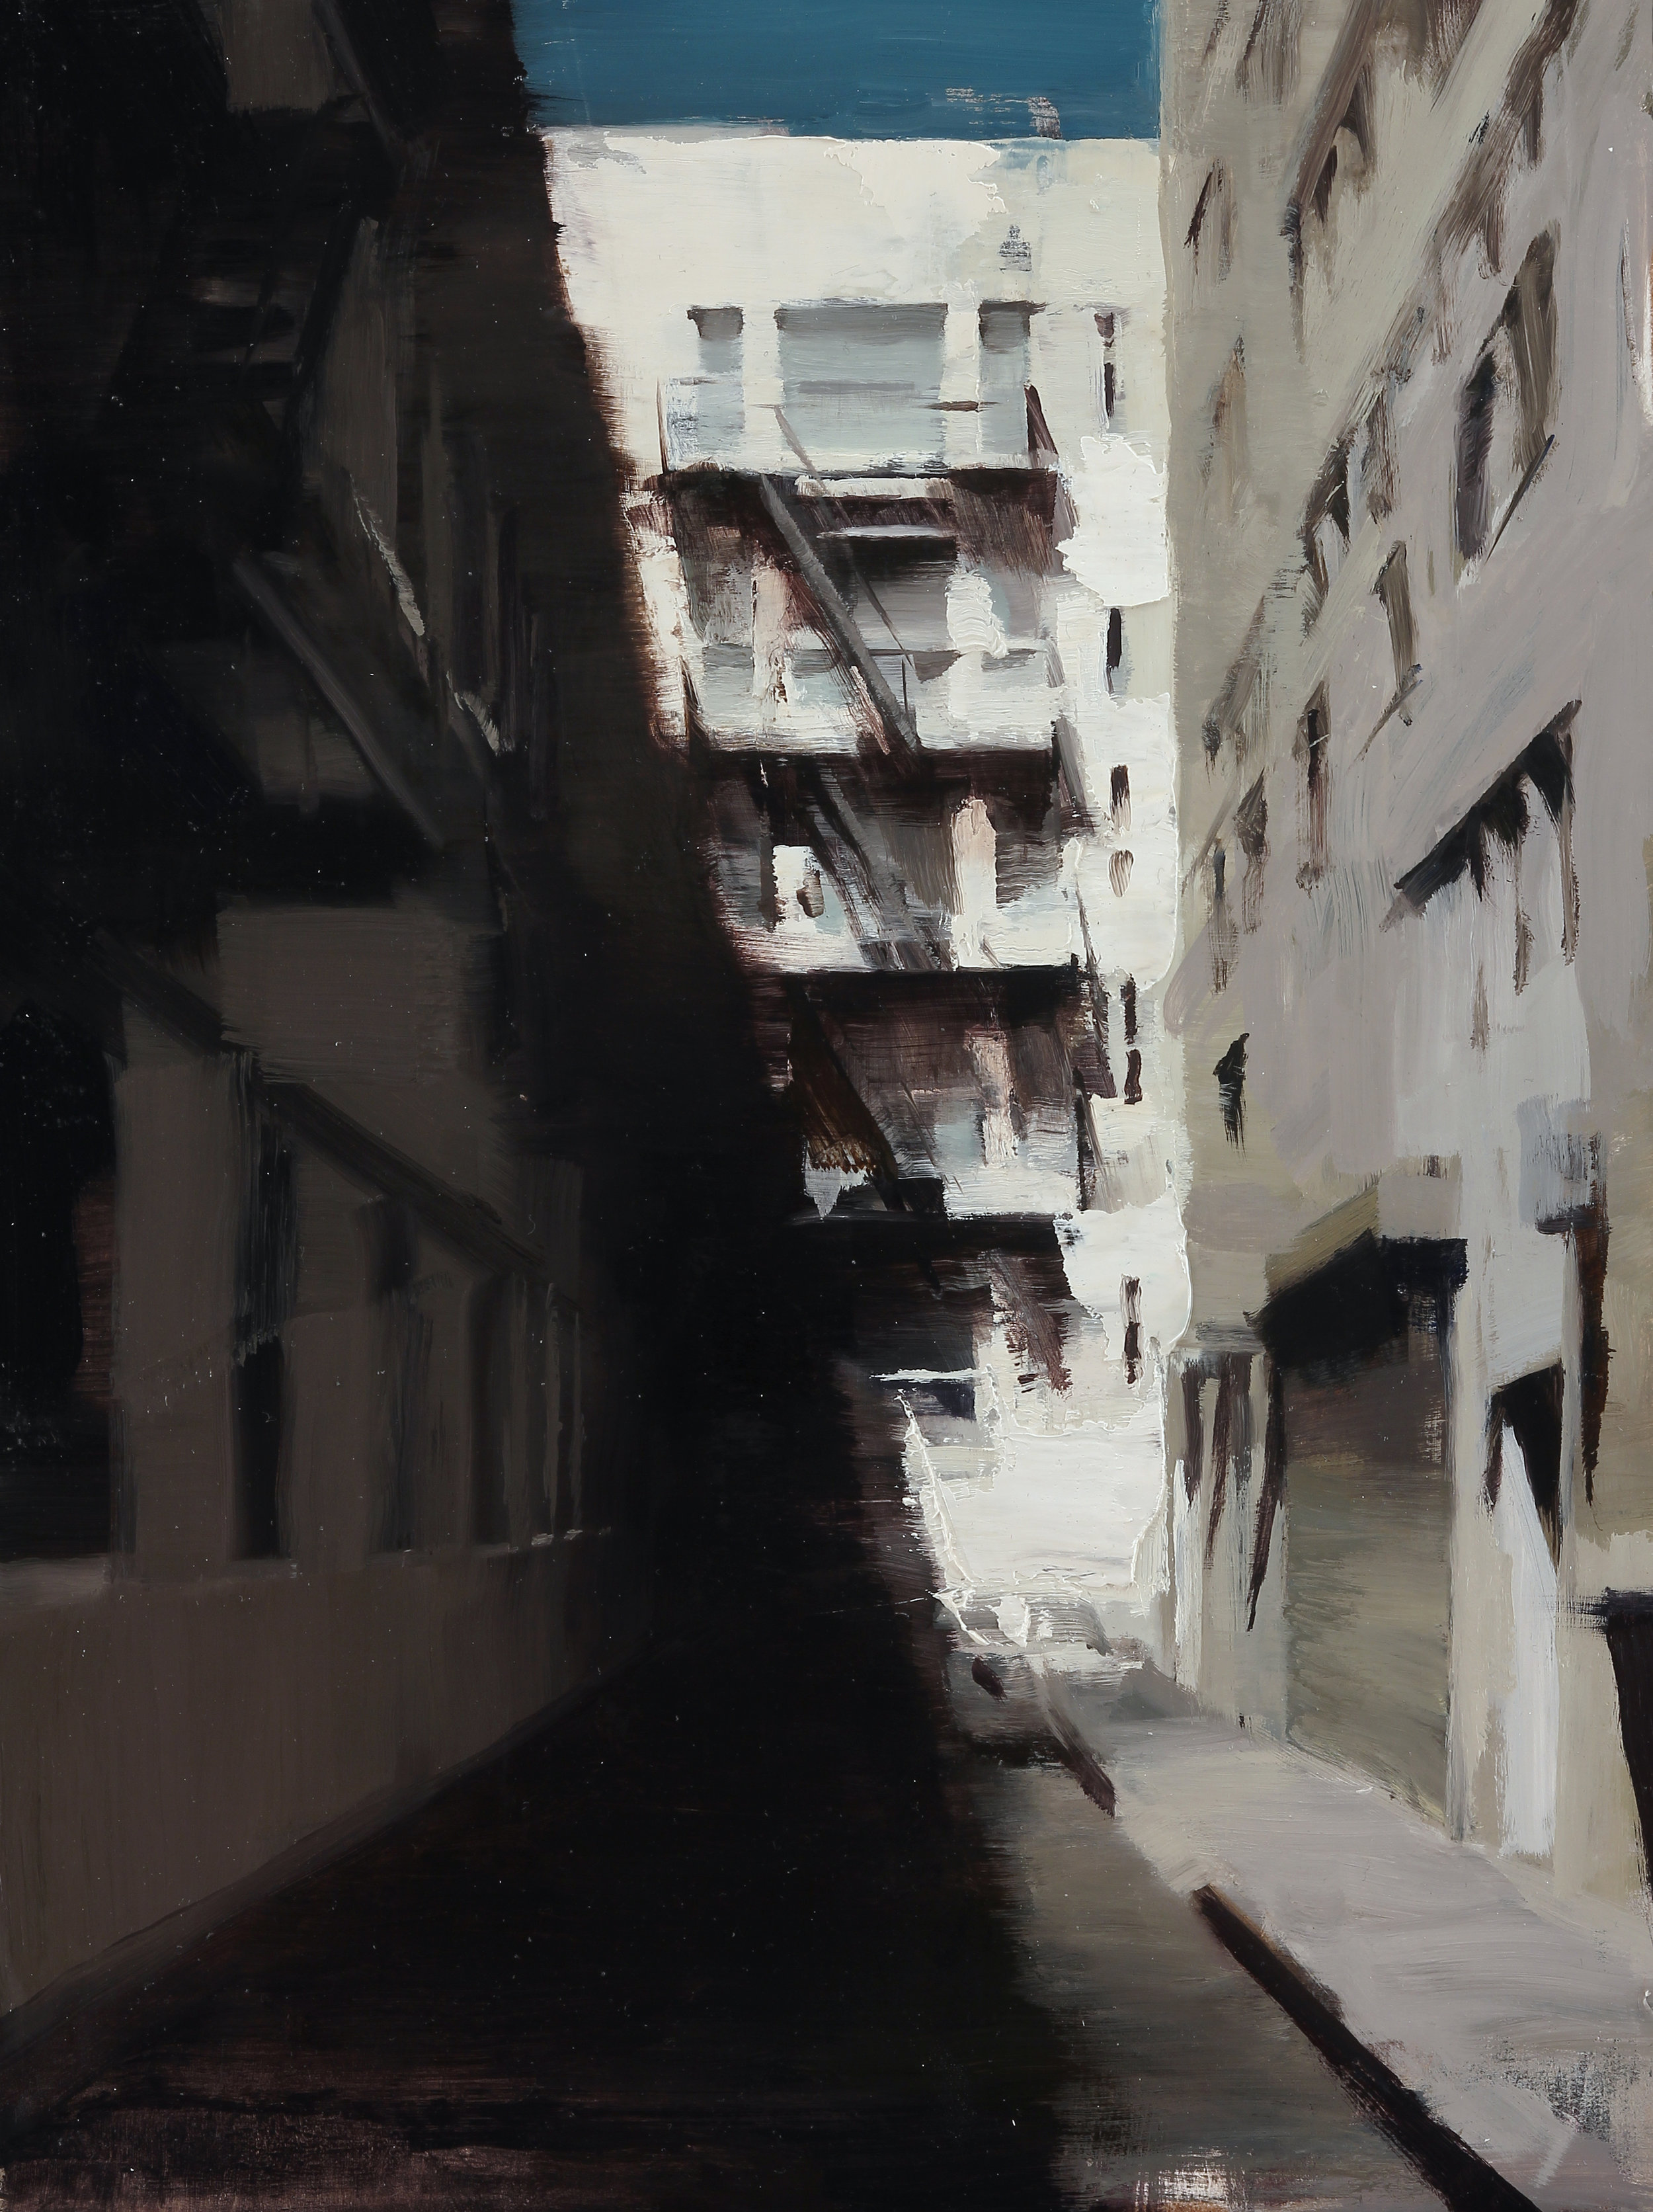 Shadows of an Alley 16 X 12 inches oil on panel